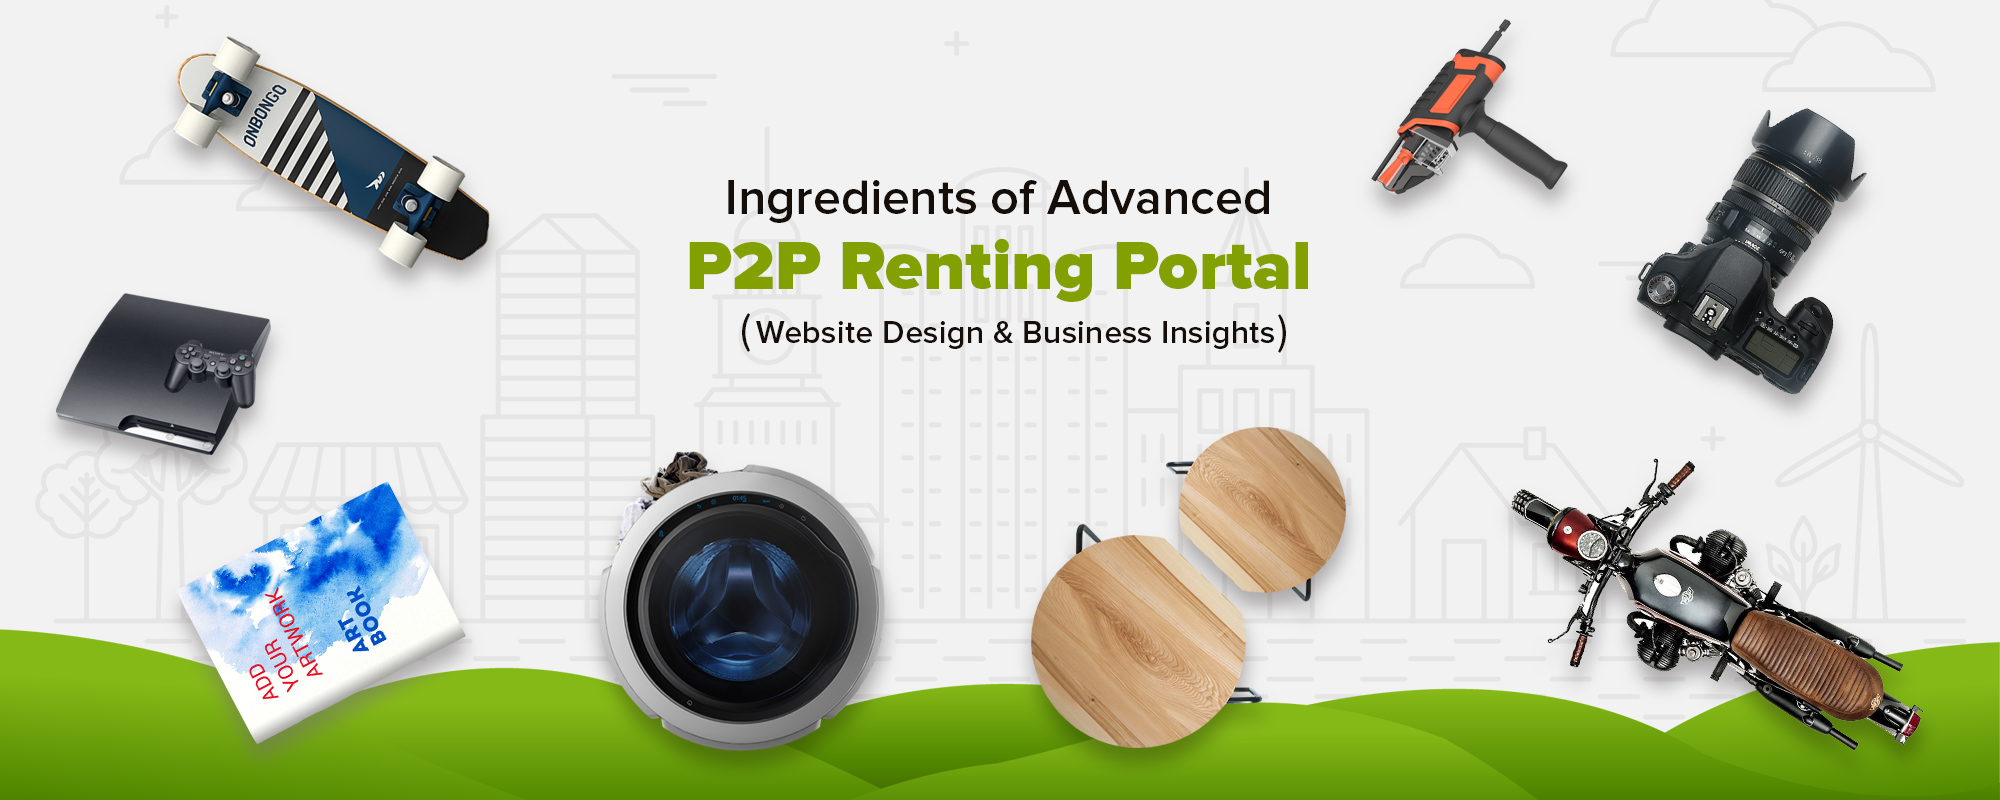 Advanced Features to Evolve Peer-to-Peer Renting Marketplace